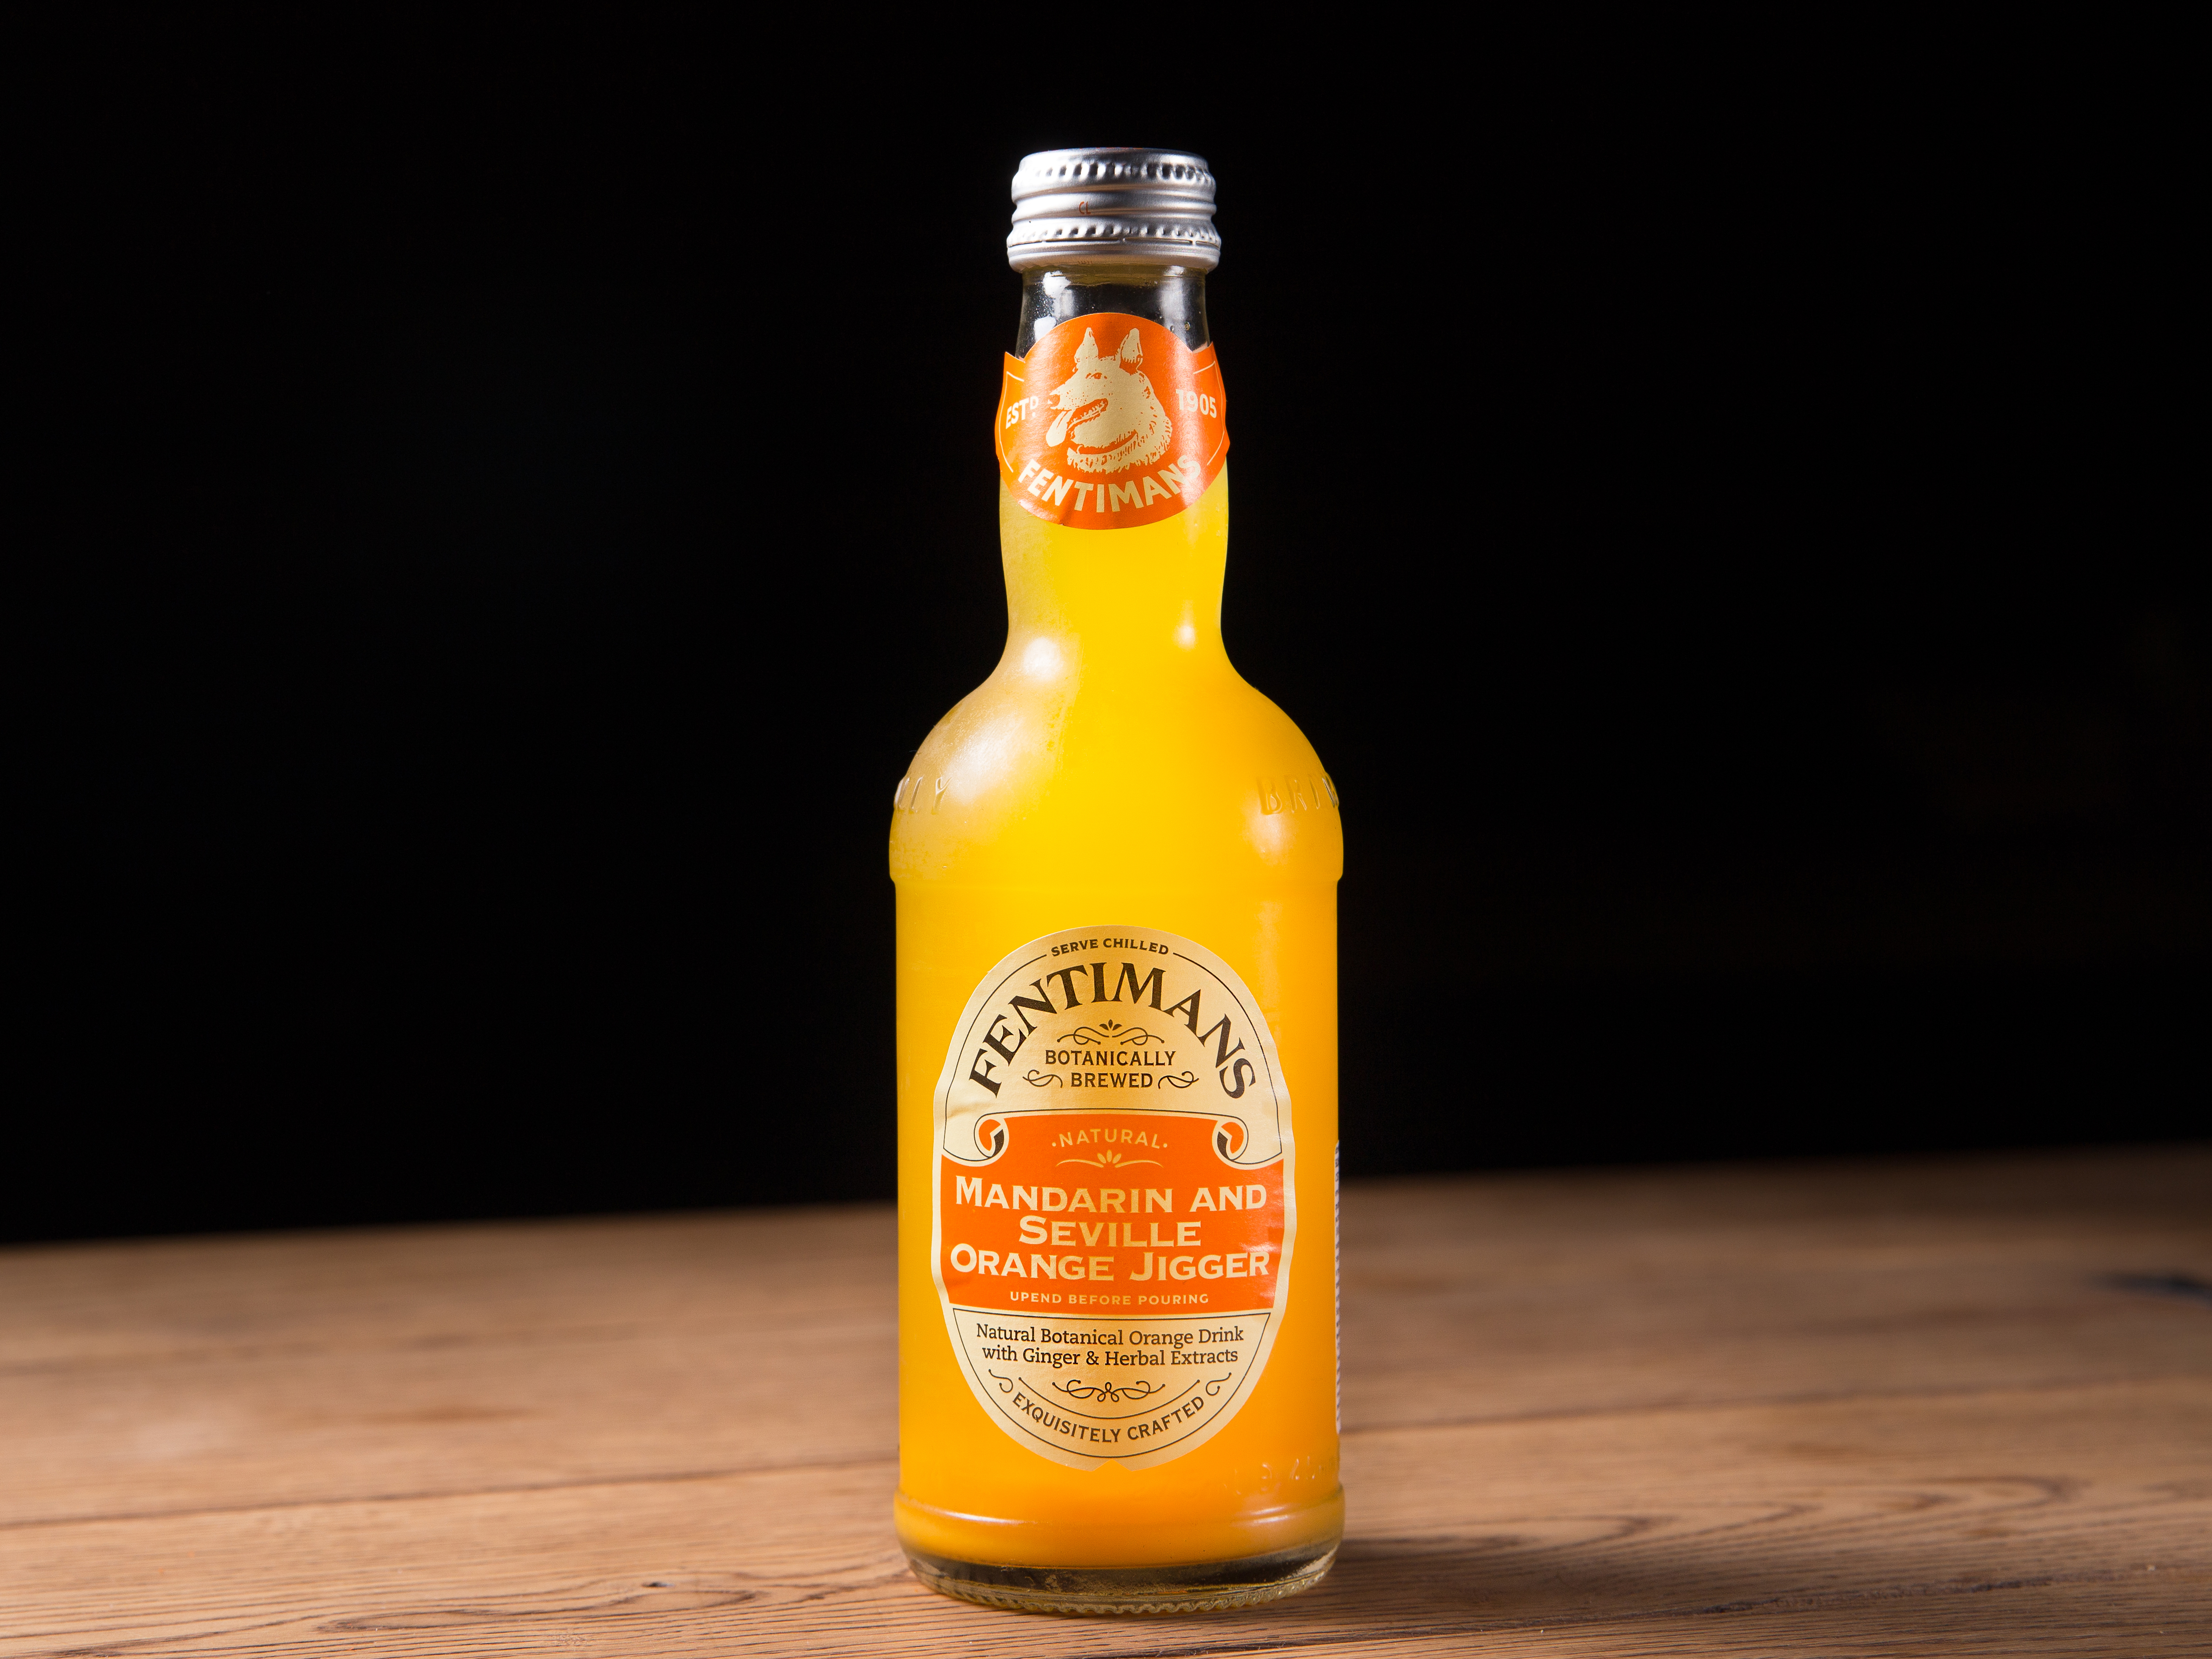 Лимонад Fentimans Mandarin and seville orange jigger